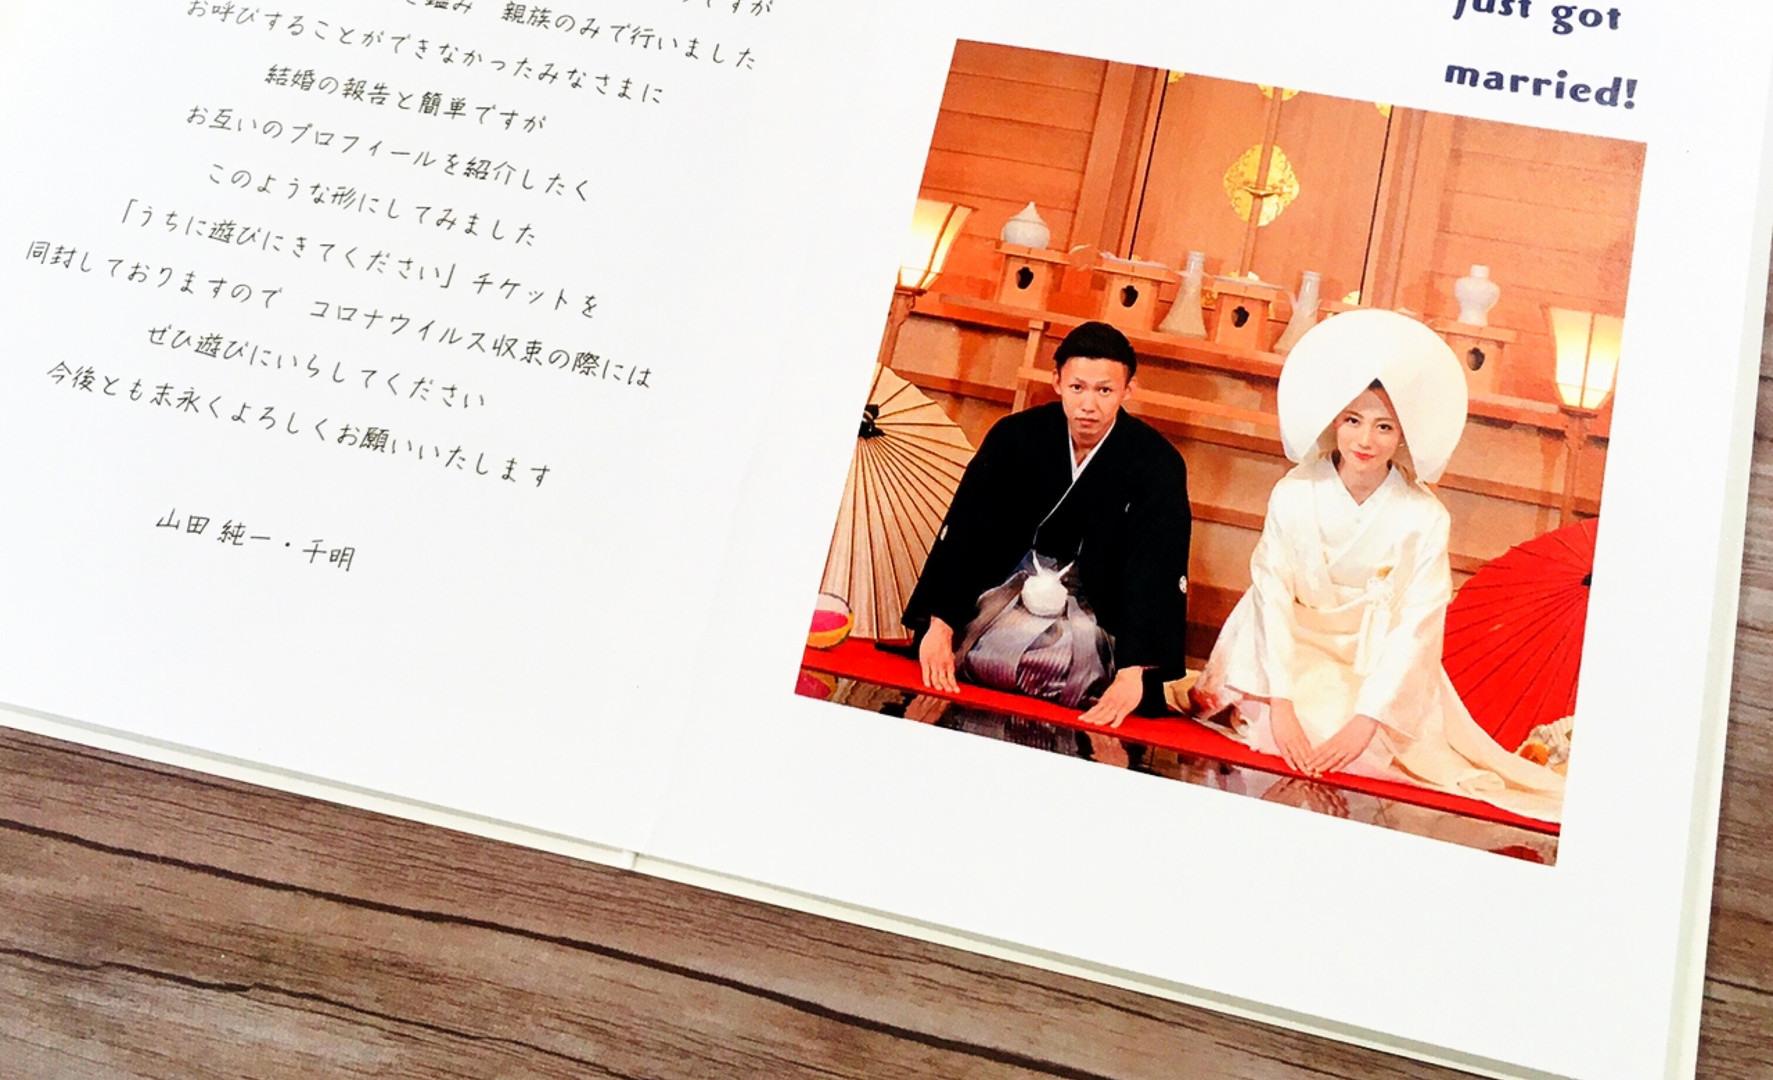 Just married デザイン5-A-5.jpg